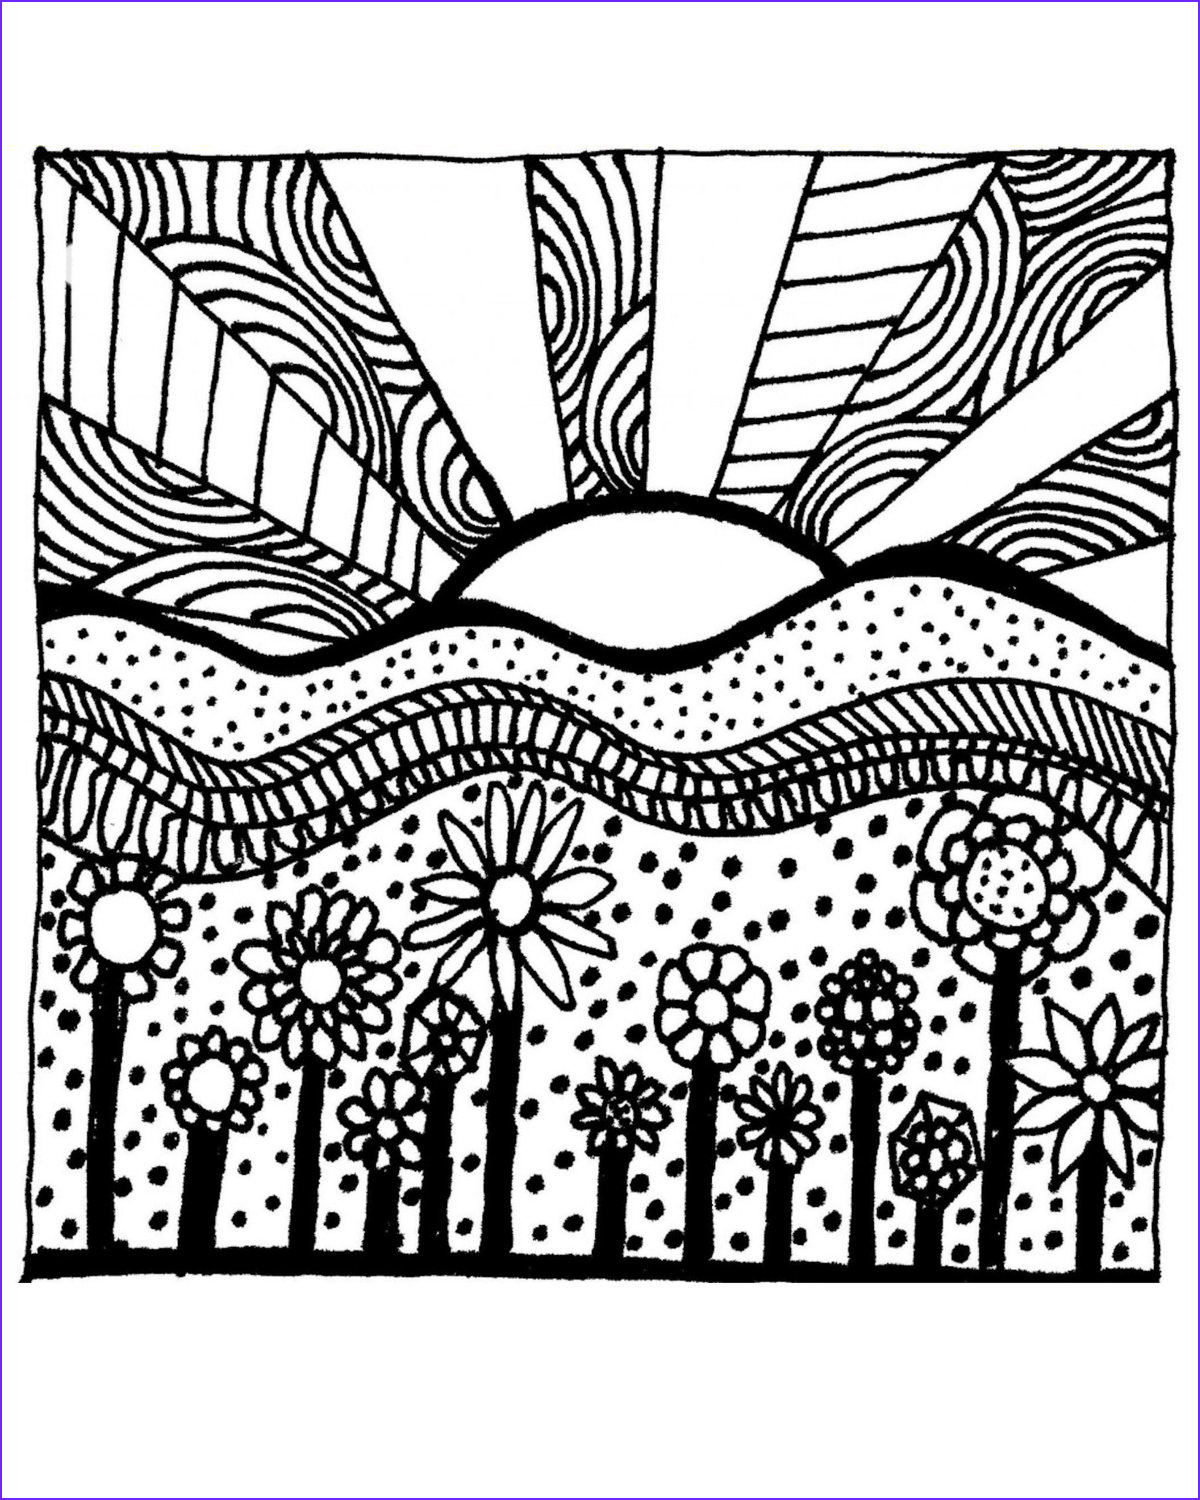 Free Downloadable Adult Coloring Pages Best Of Images Free Coloring Pages for Adults